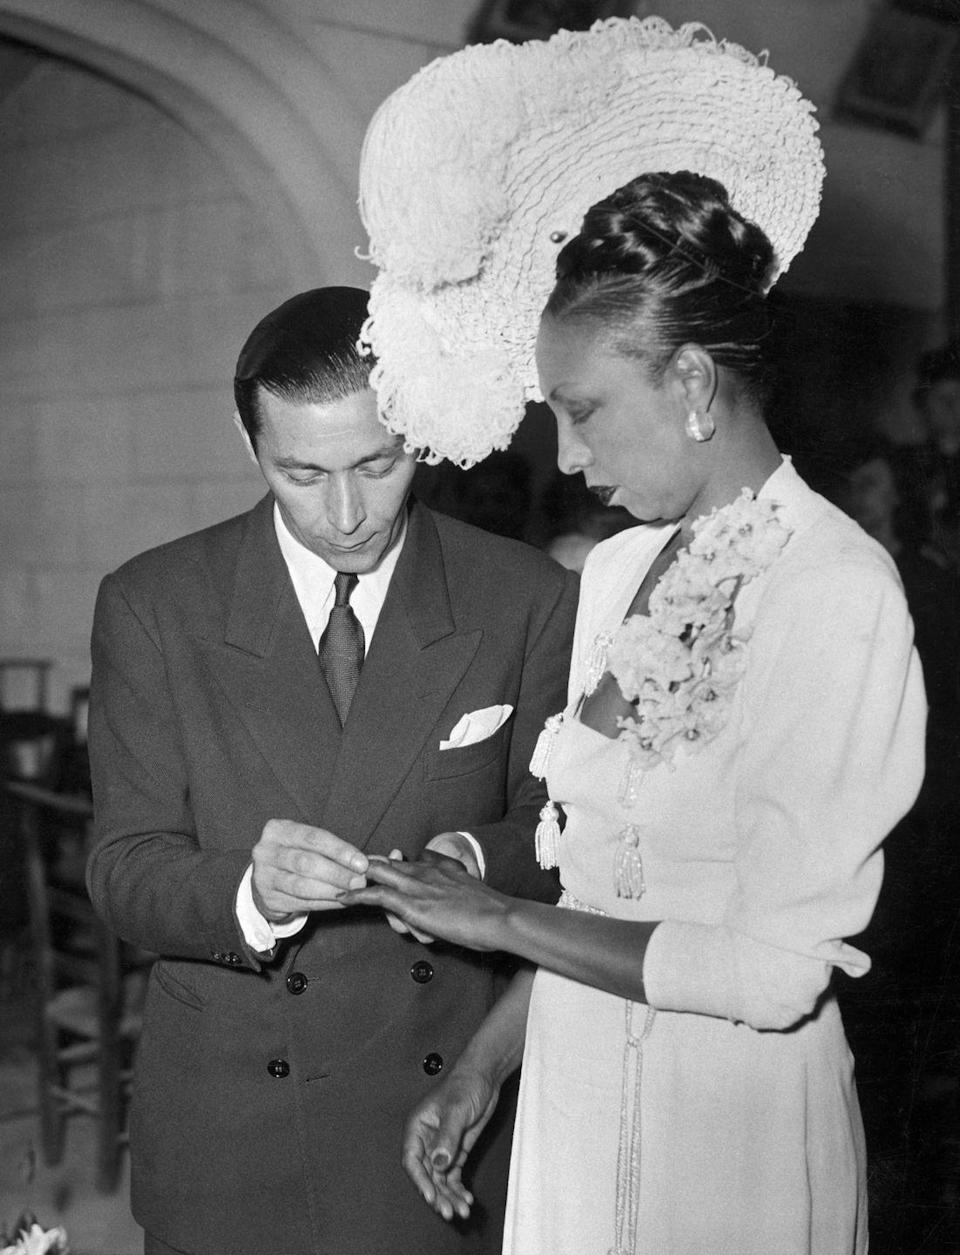 """<p>For her fourth marriage to French actor Jo Buillon, Josephine Baker stunned in a square neck sheath dress and white feathered hat. They said """"I do"""" in the chapel on the grounds of her chateau, Les Milandes, in 1947. The couple went on to adopt 12 children together and were married until 1961. </p>"""